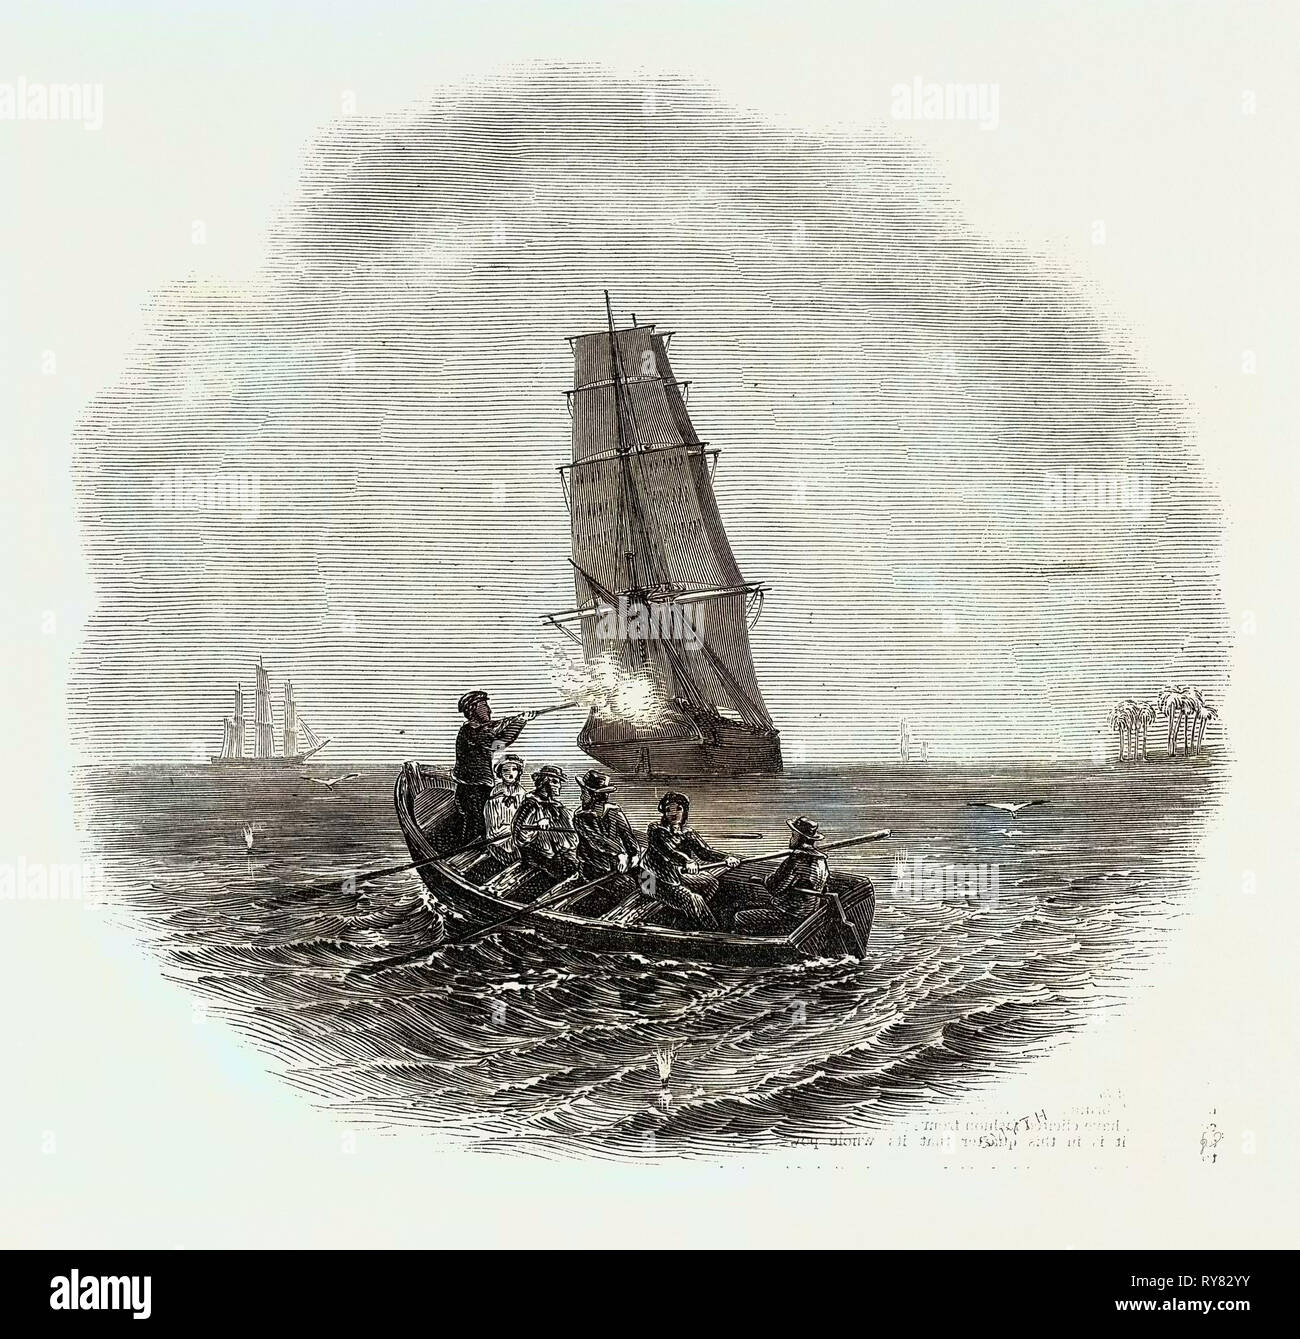 Gallant Capture of a Slaver, Off Fish Bay, West Coast of Africa - Stock Image